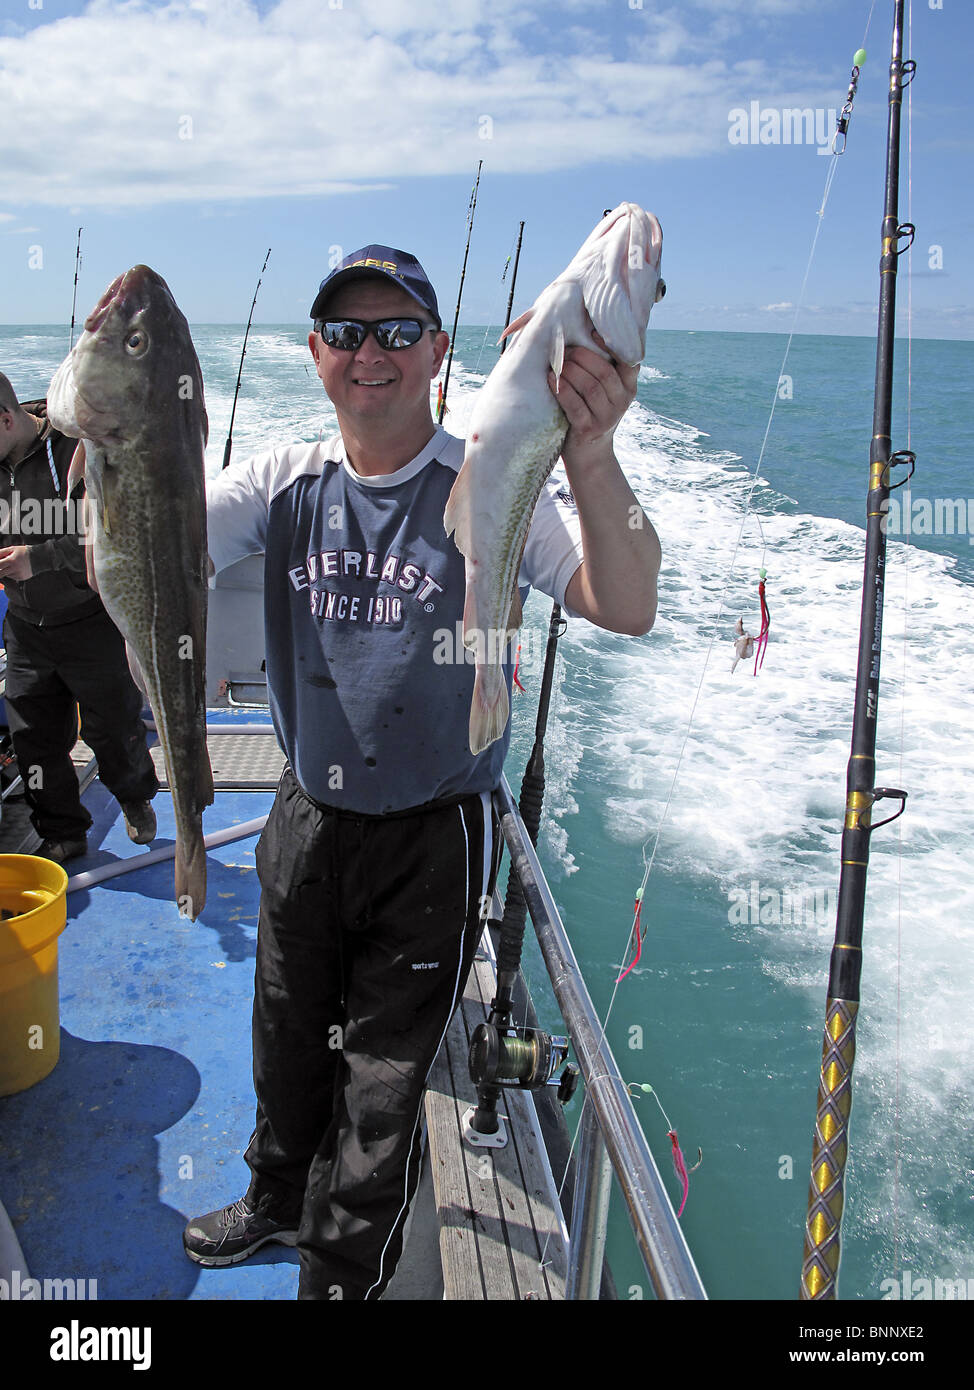 Sport deep sea fishing. A man shows his catch of two cod fish. - Stock Image